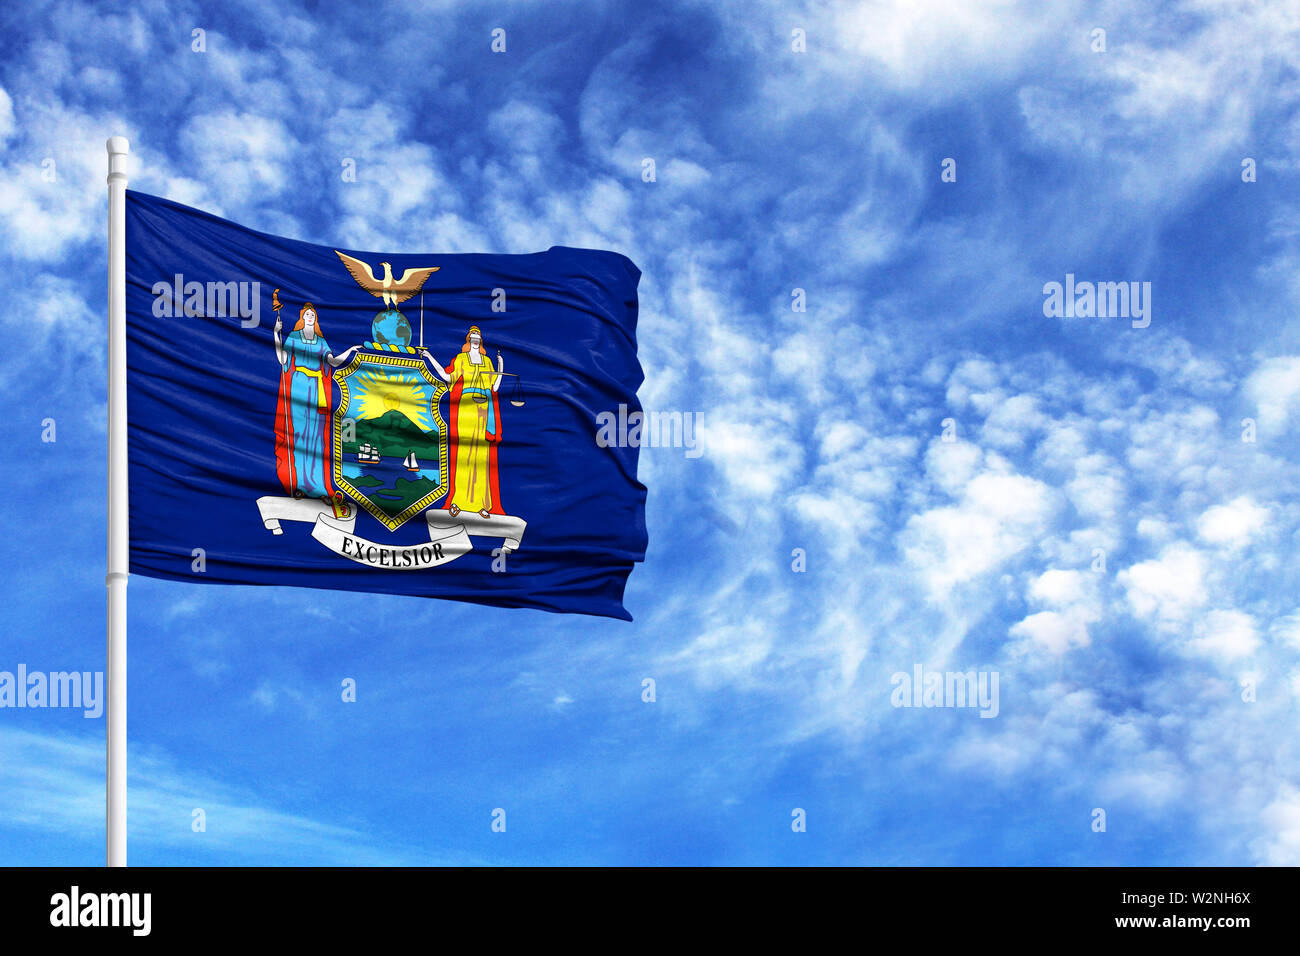 National flag State of New York on a flagpole in front of blue sky - Stock Image